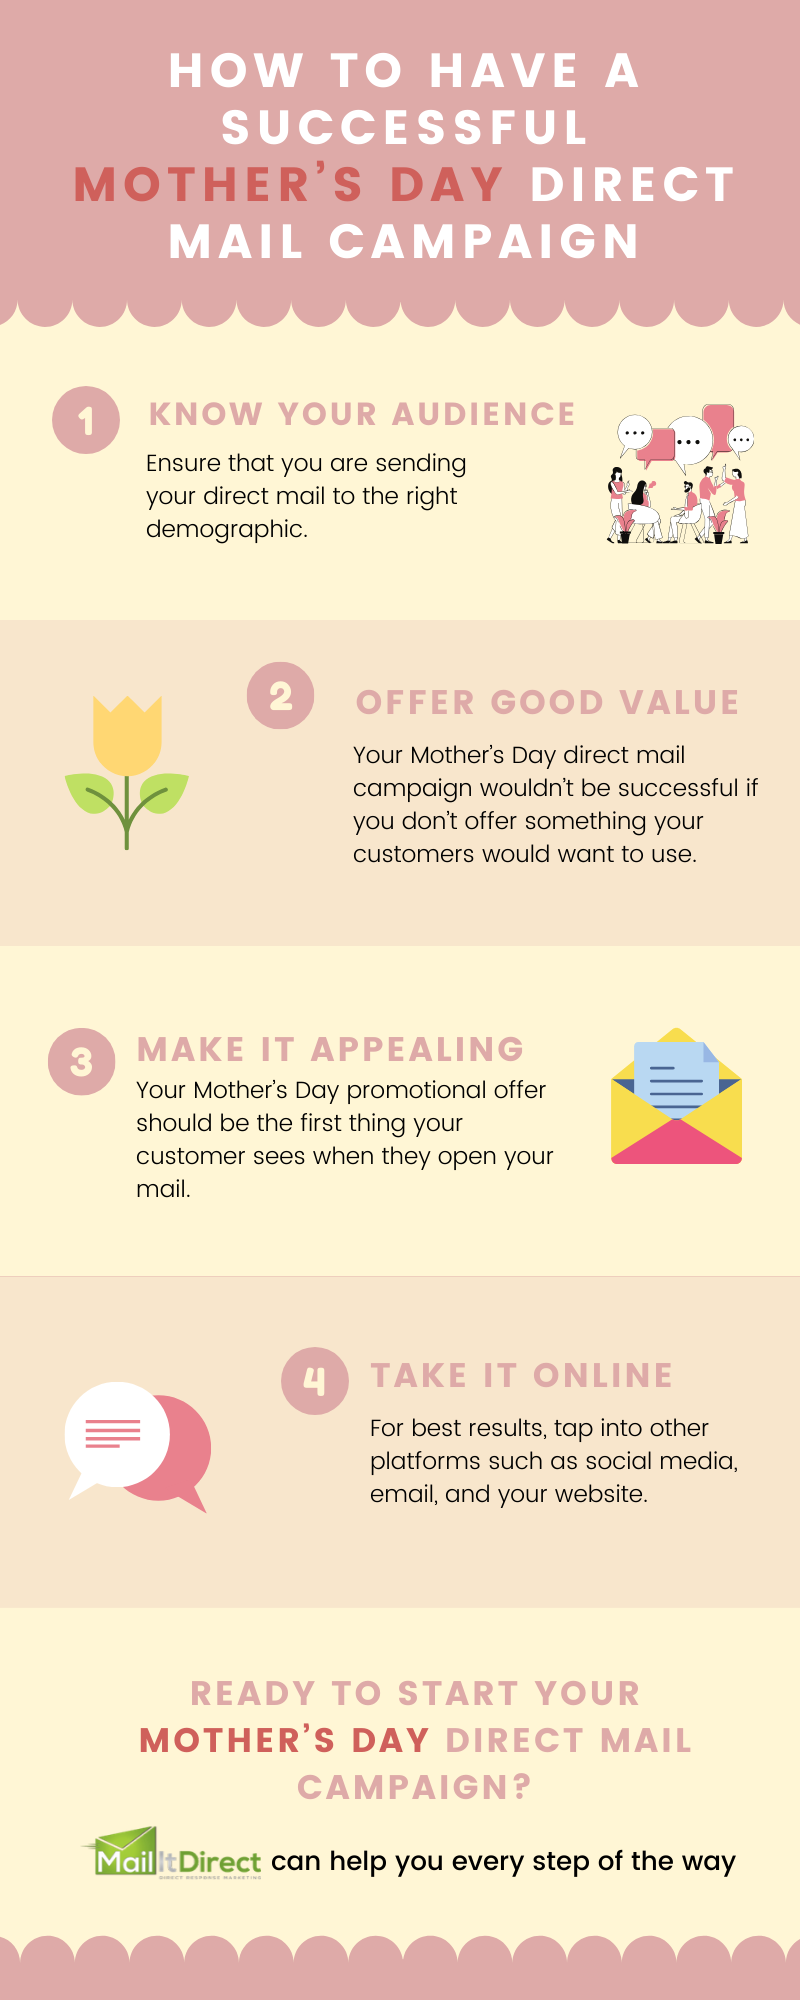 How to have a successful Mother's Day direct mail campaign